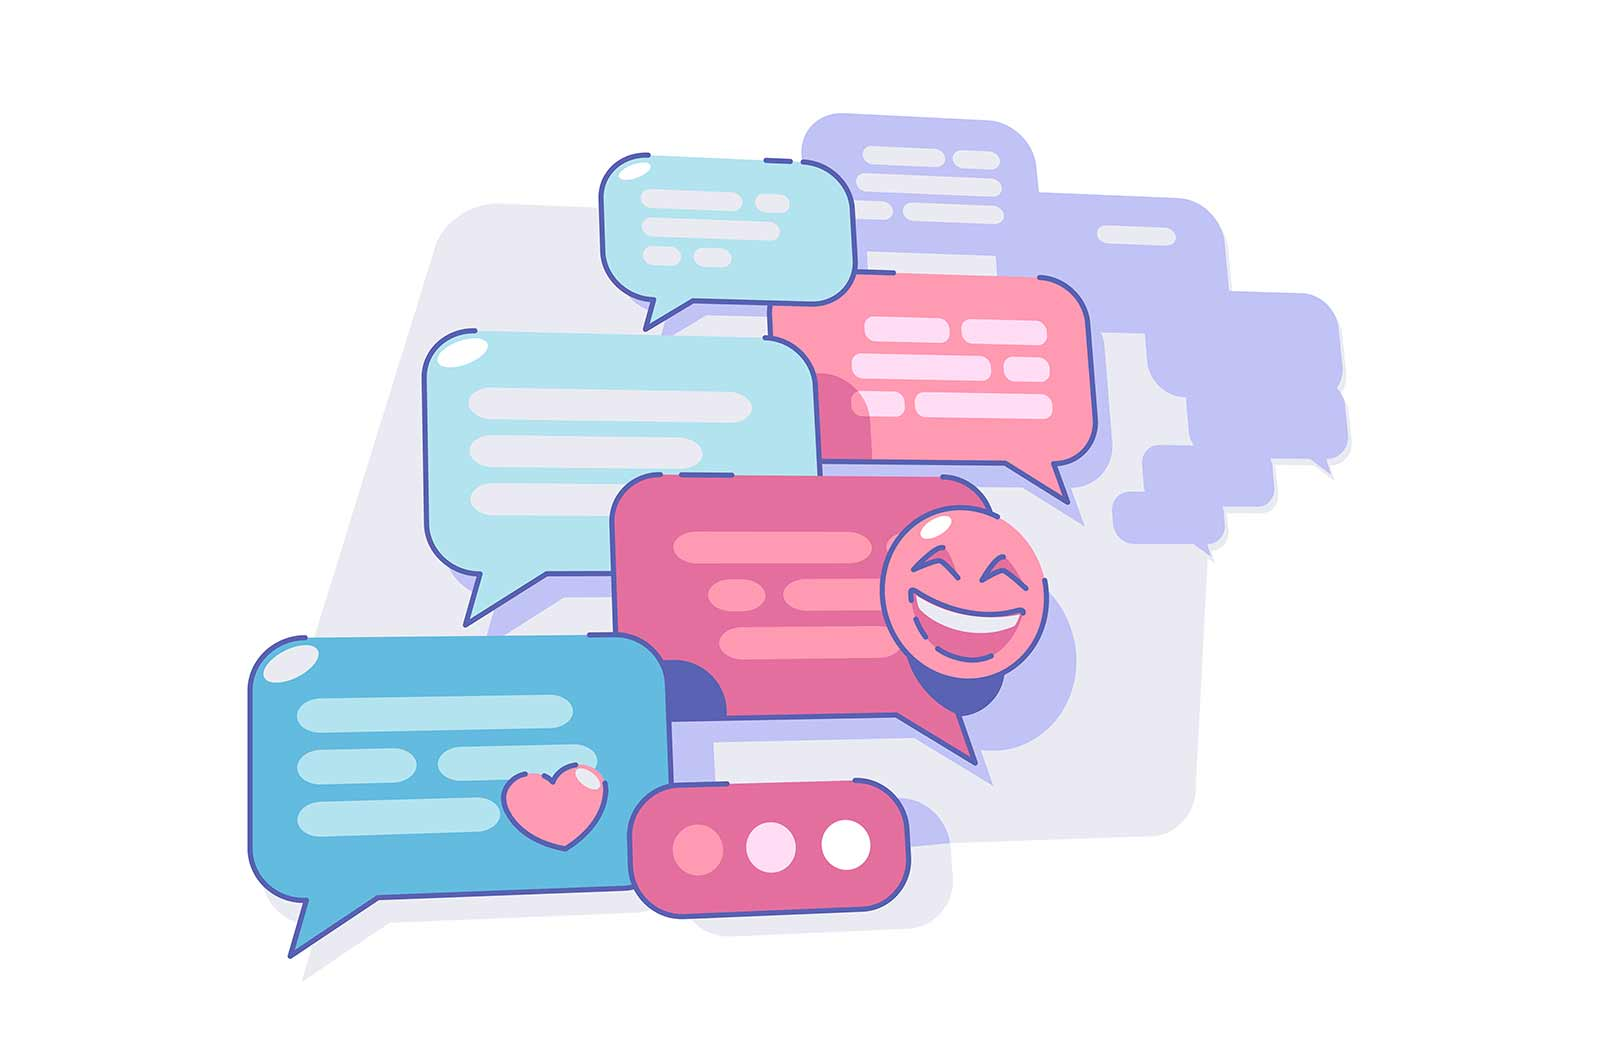 Chatting via messenger app vector illustration. Modern way for talking on smartphone flat style. Fun emoji. Communication and technology concept. Isolated on white background